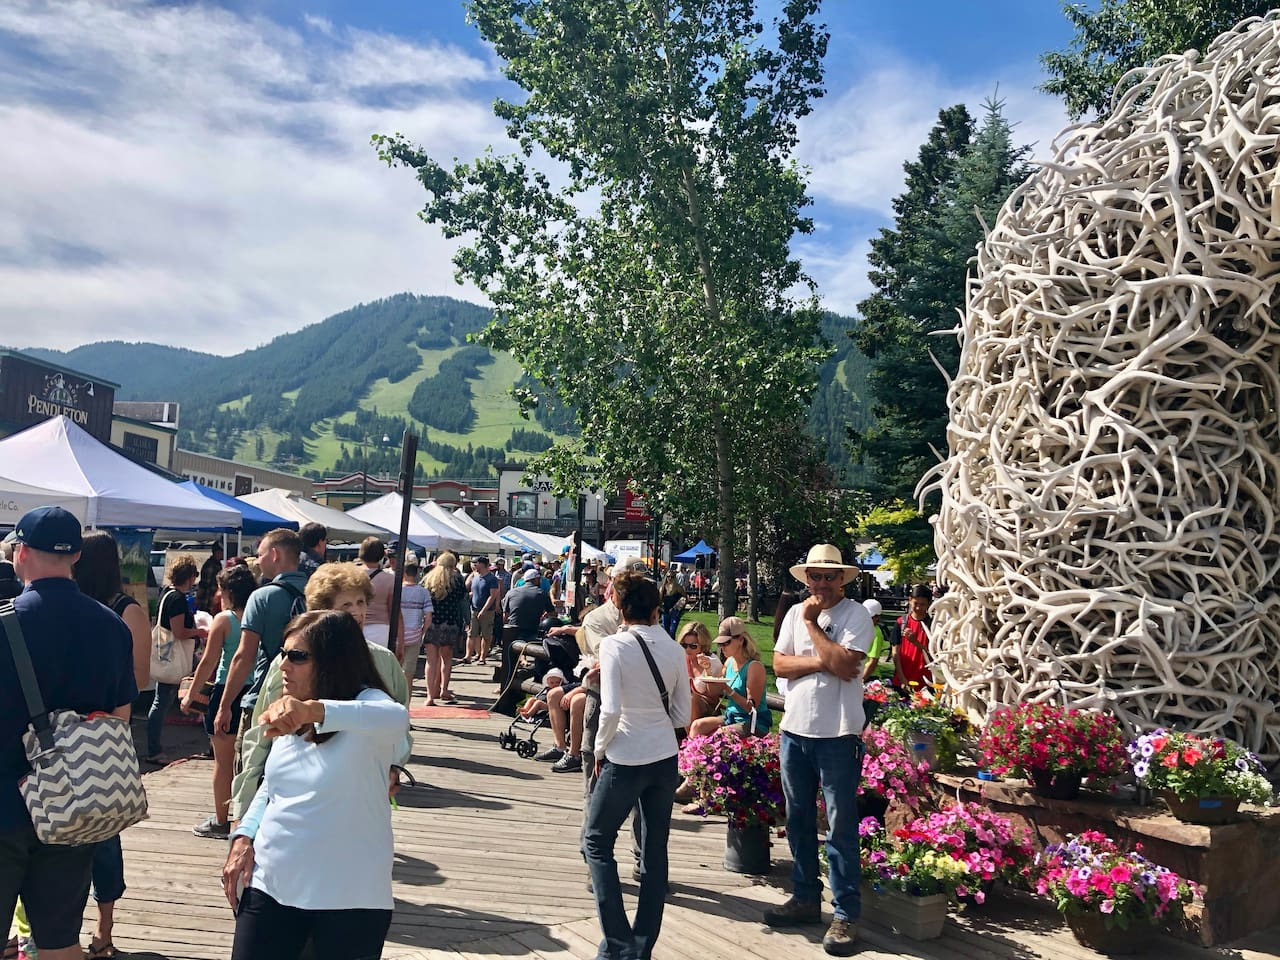 Farmers Market bustling with delicacies during Summer.  Snow King mountain in the background.  This is your world class location during your stay!